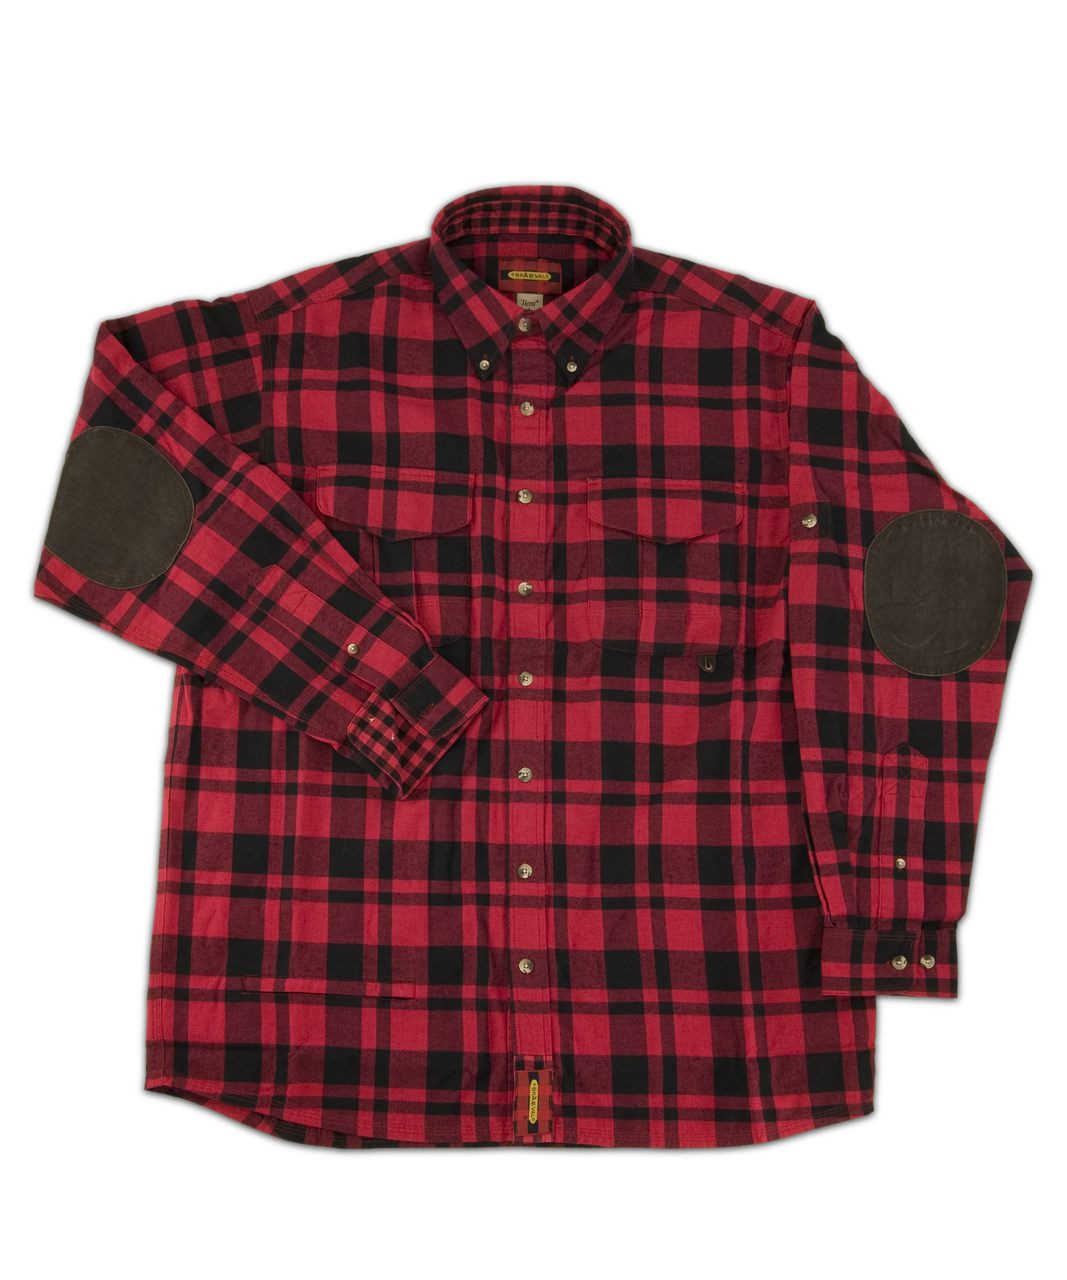 Paddock - Rob Roy Highlander Plaid